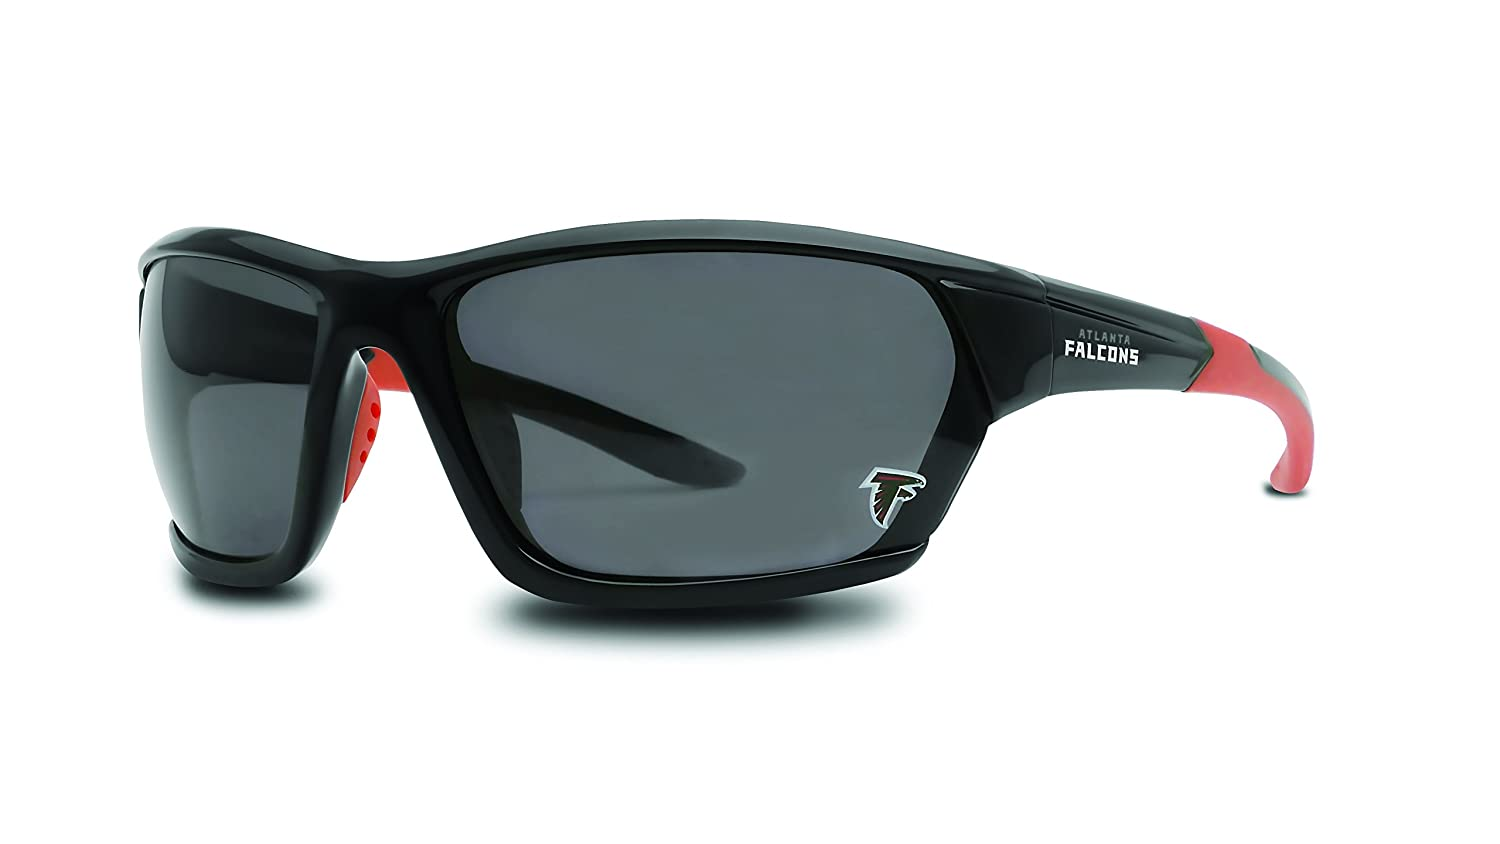 California Accessories Atlanta Falcons Gafas de Sol ...